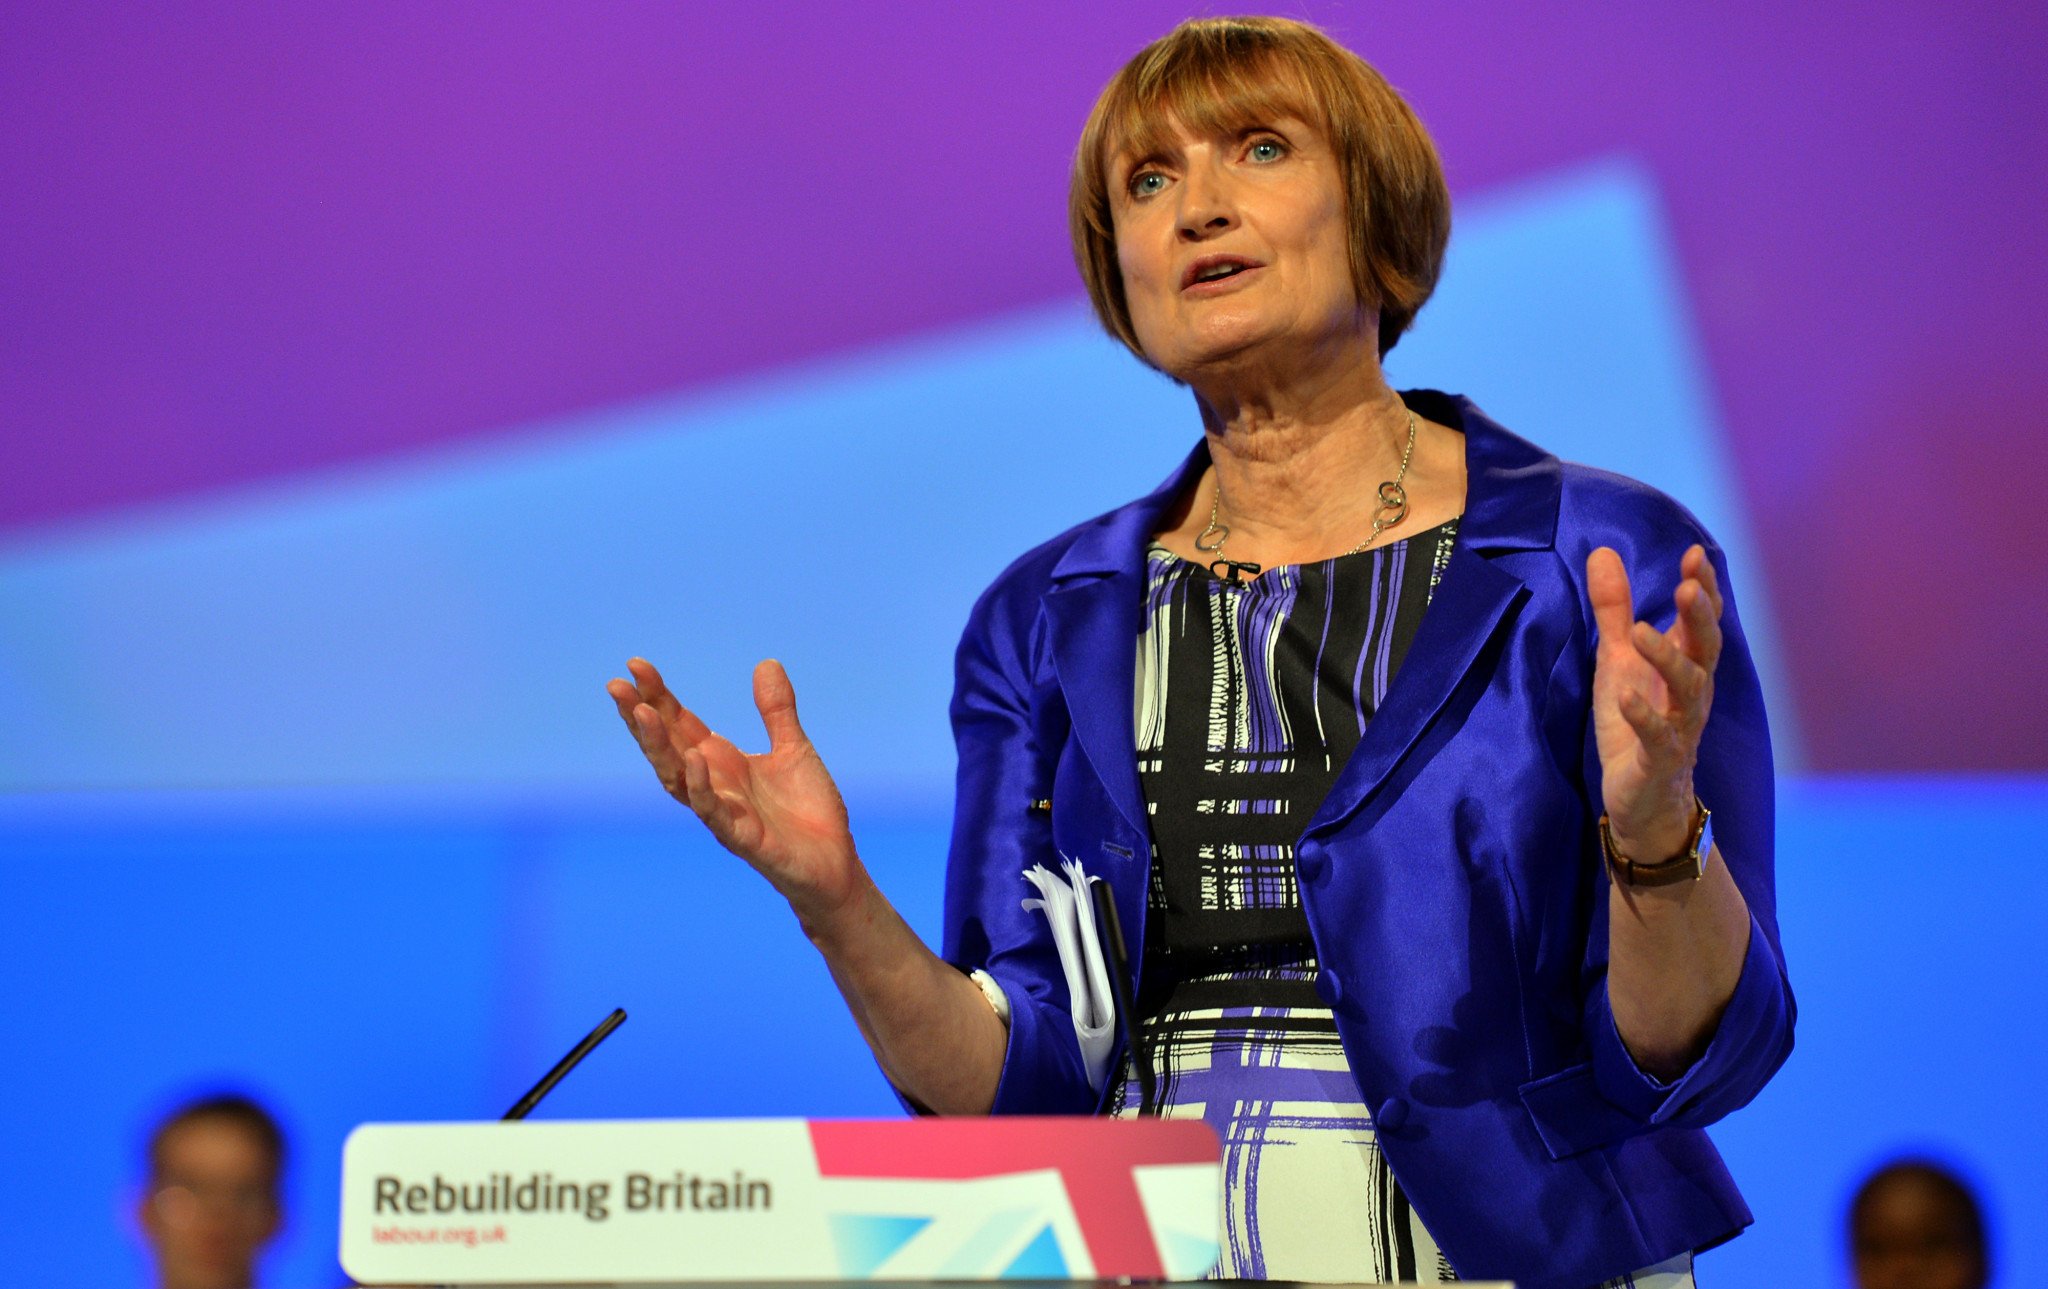 Dame Tessa Jowell, a former UK Minister for the Olympics, who helped pave the way for London 2012, has died aged 70 ©Getty Images